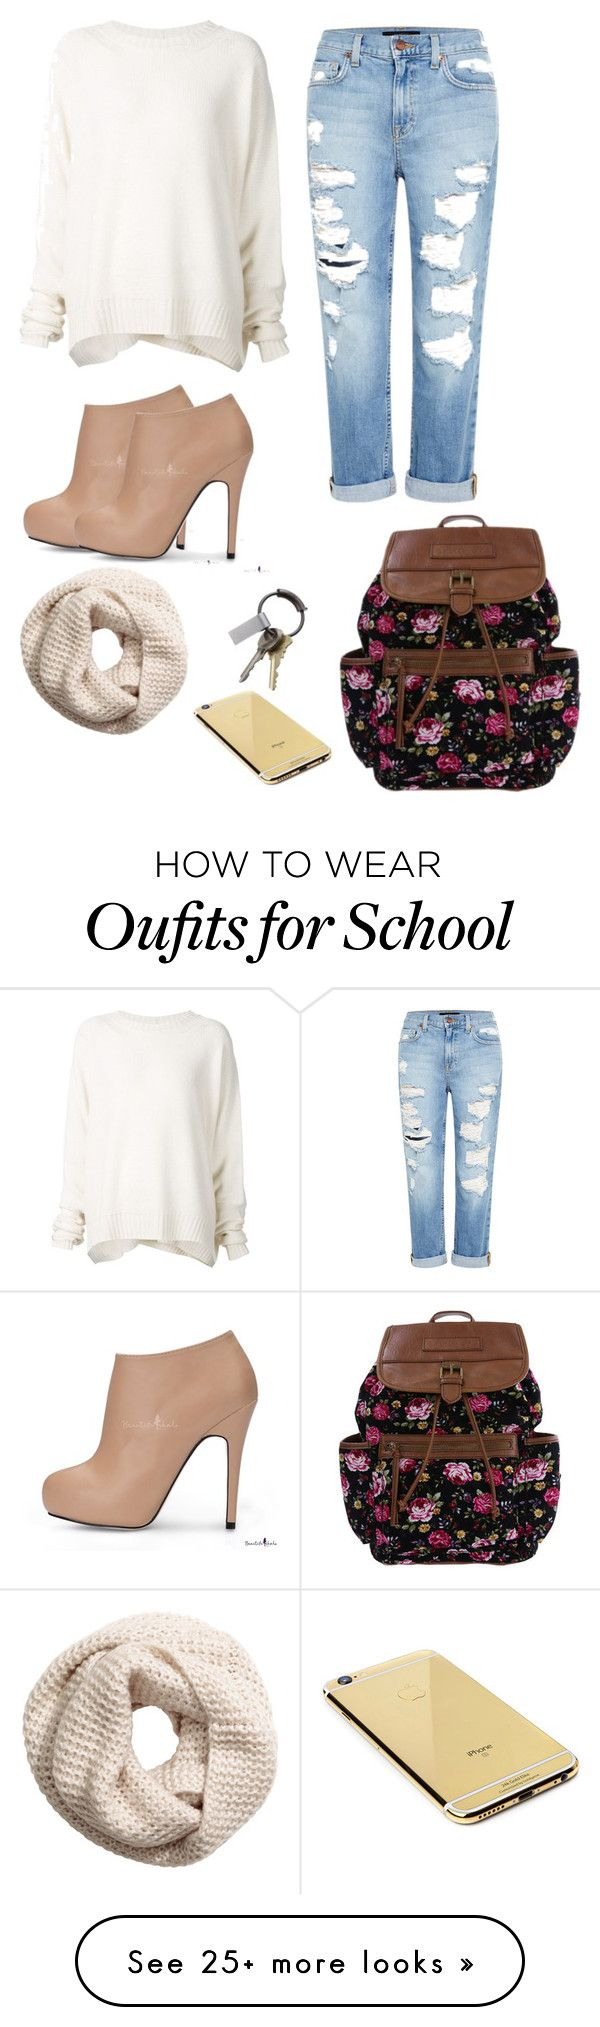 """""""School outfit for Tuesday"""" by dopelilstylist12 on Polyvore featuring URBAN ZEN…"""